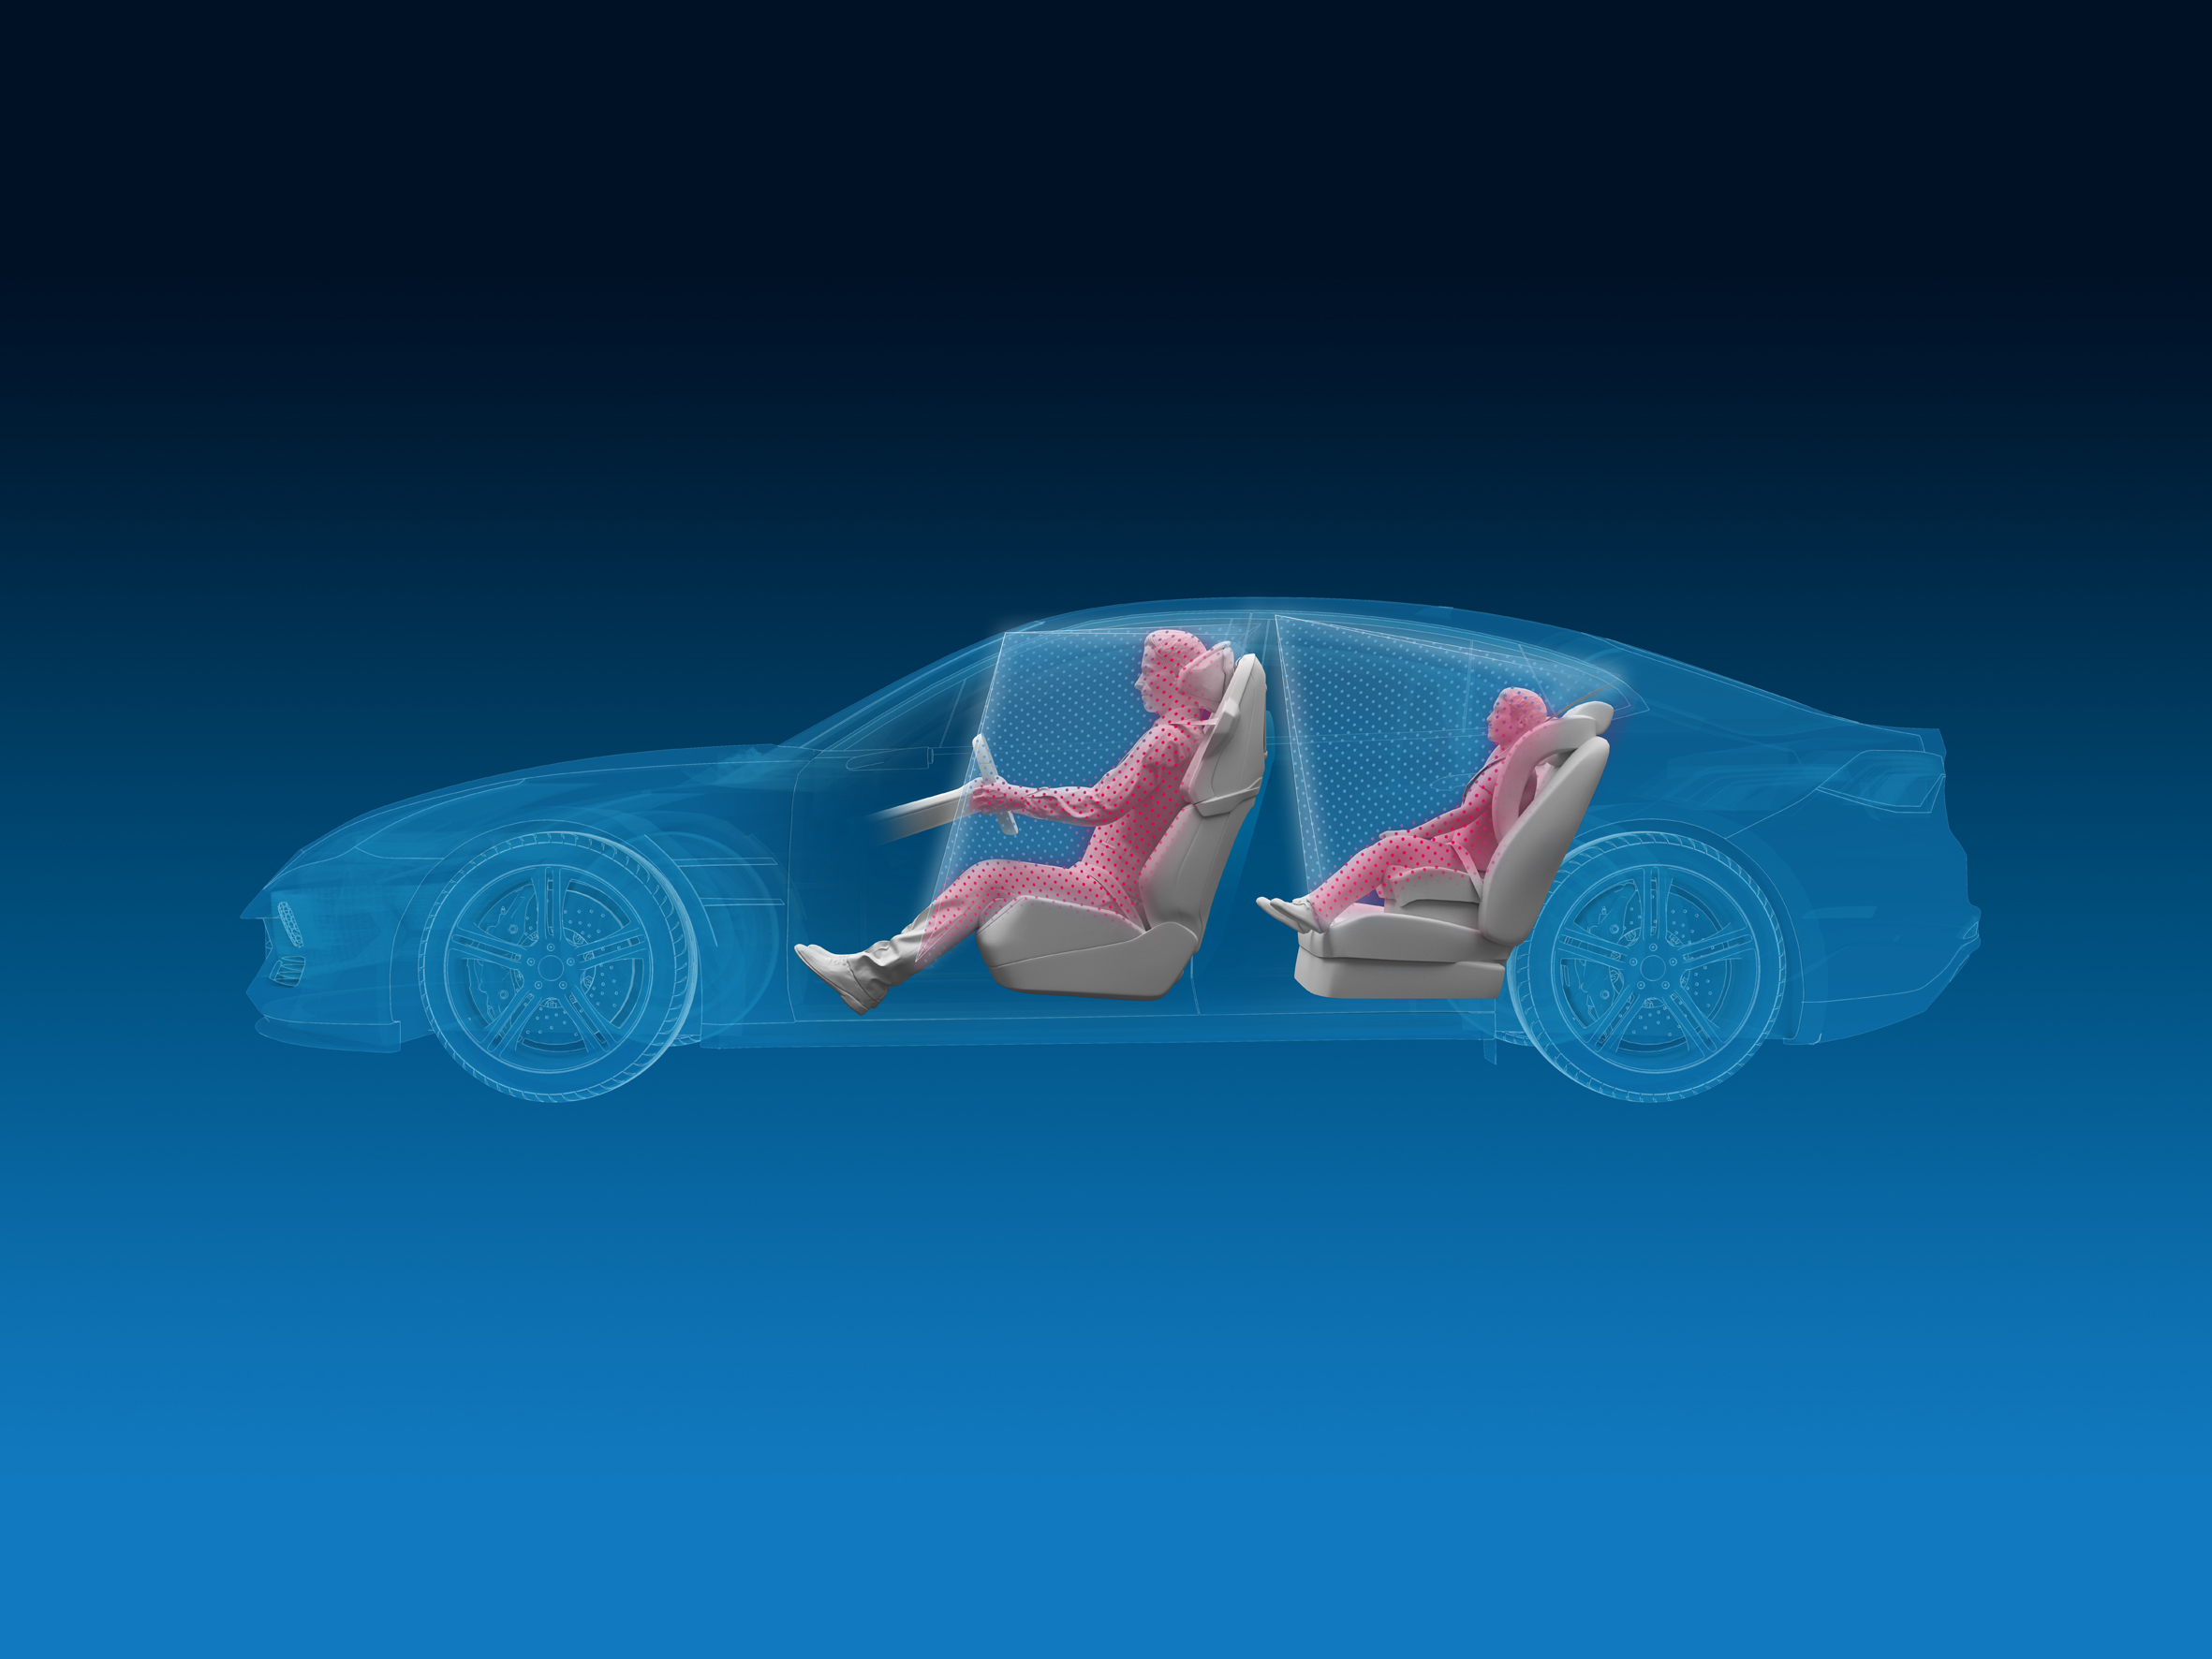 ZF Details Research on Passenger Monitoring System